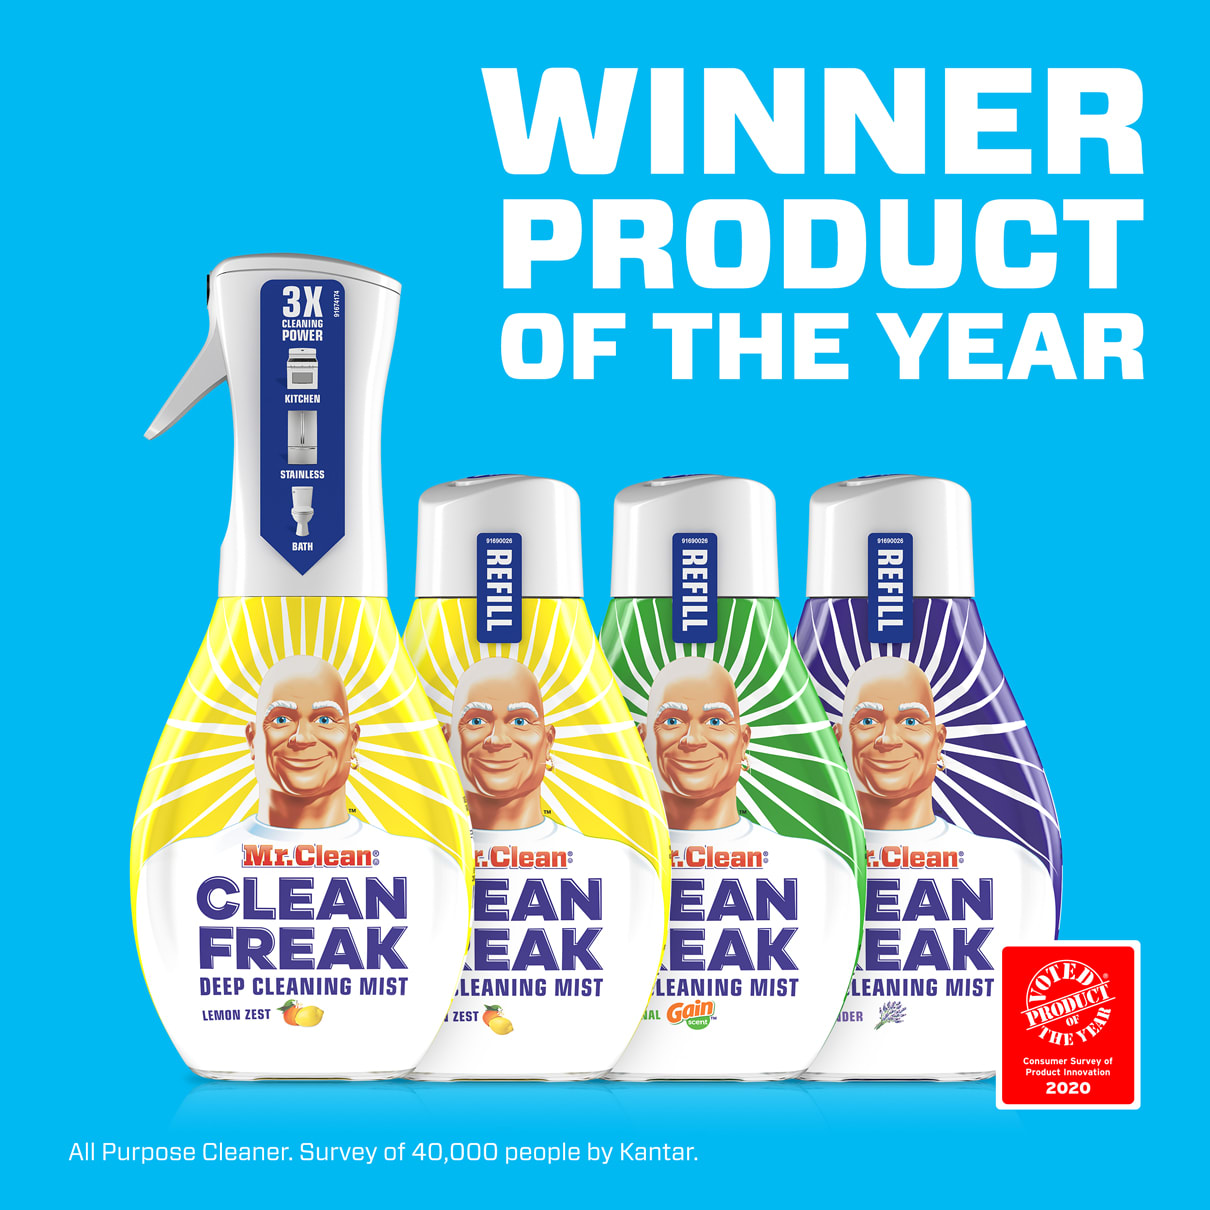 Mr. Clean Clean Freak Winner Product of the Year